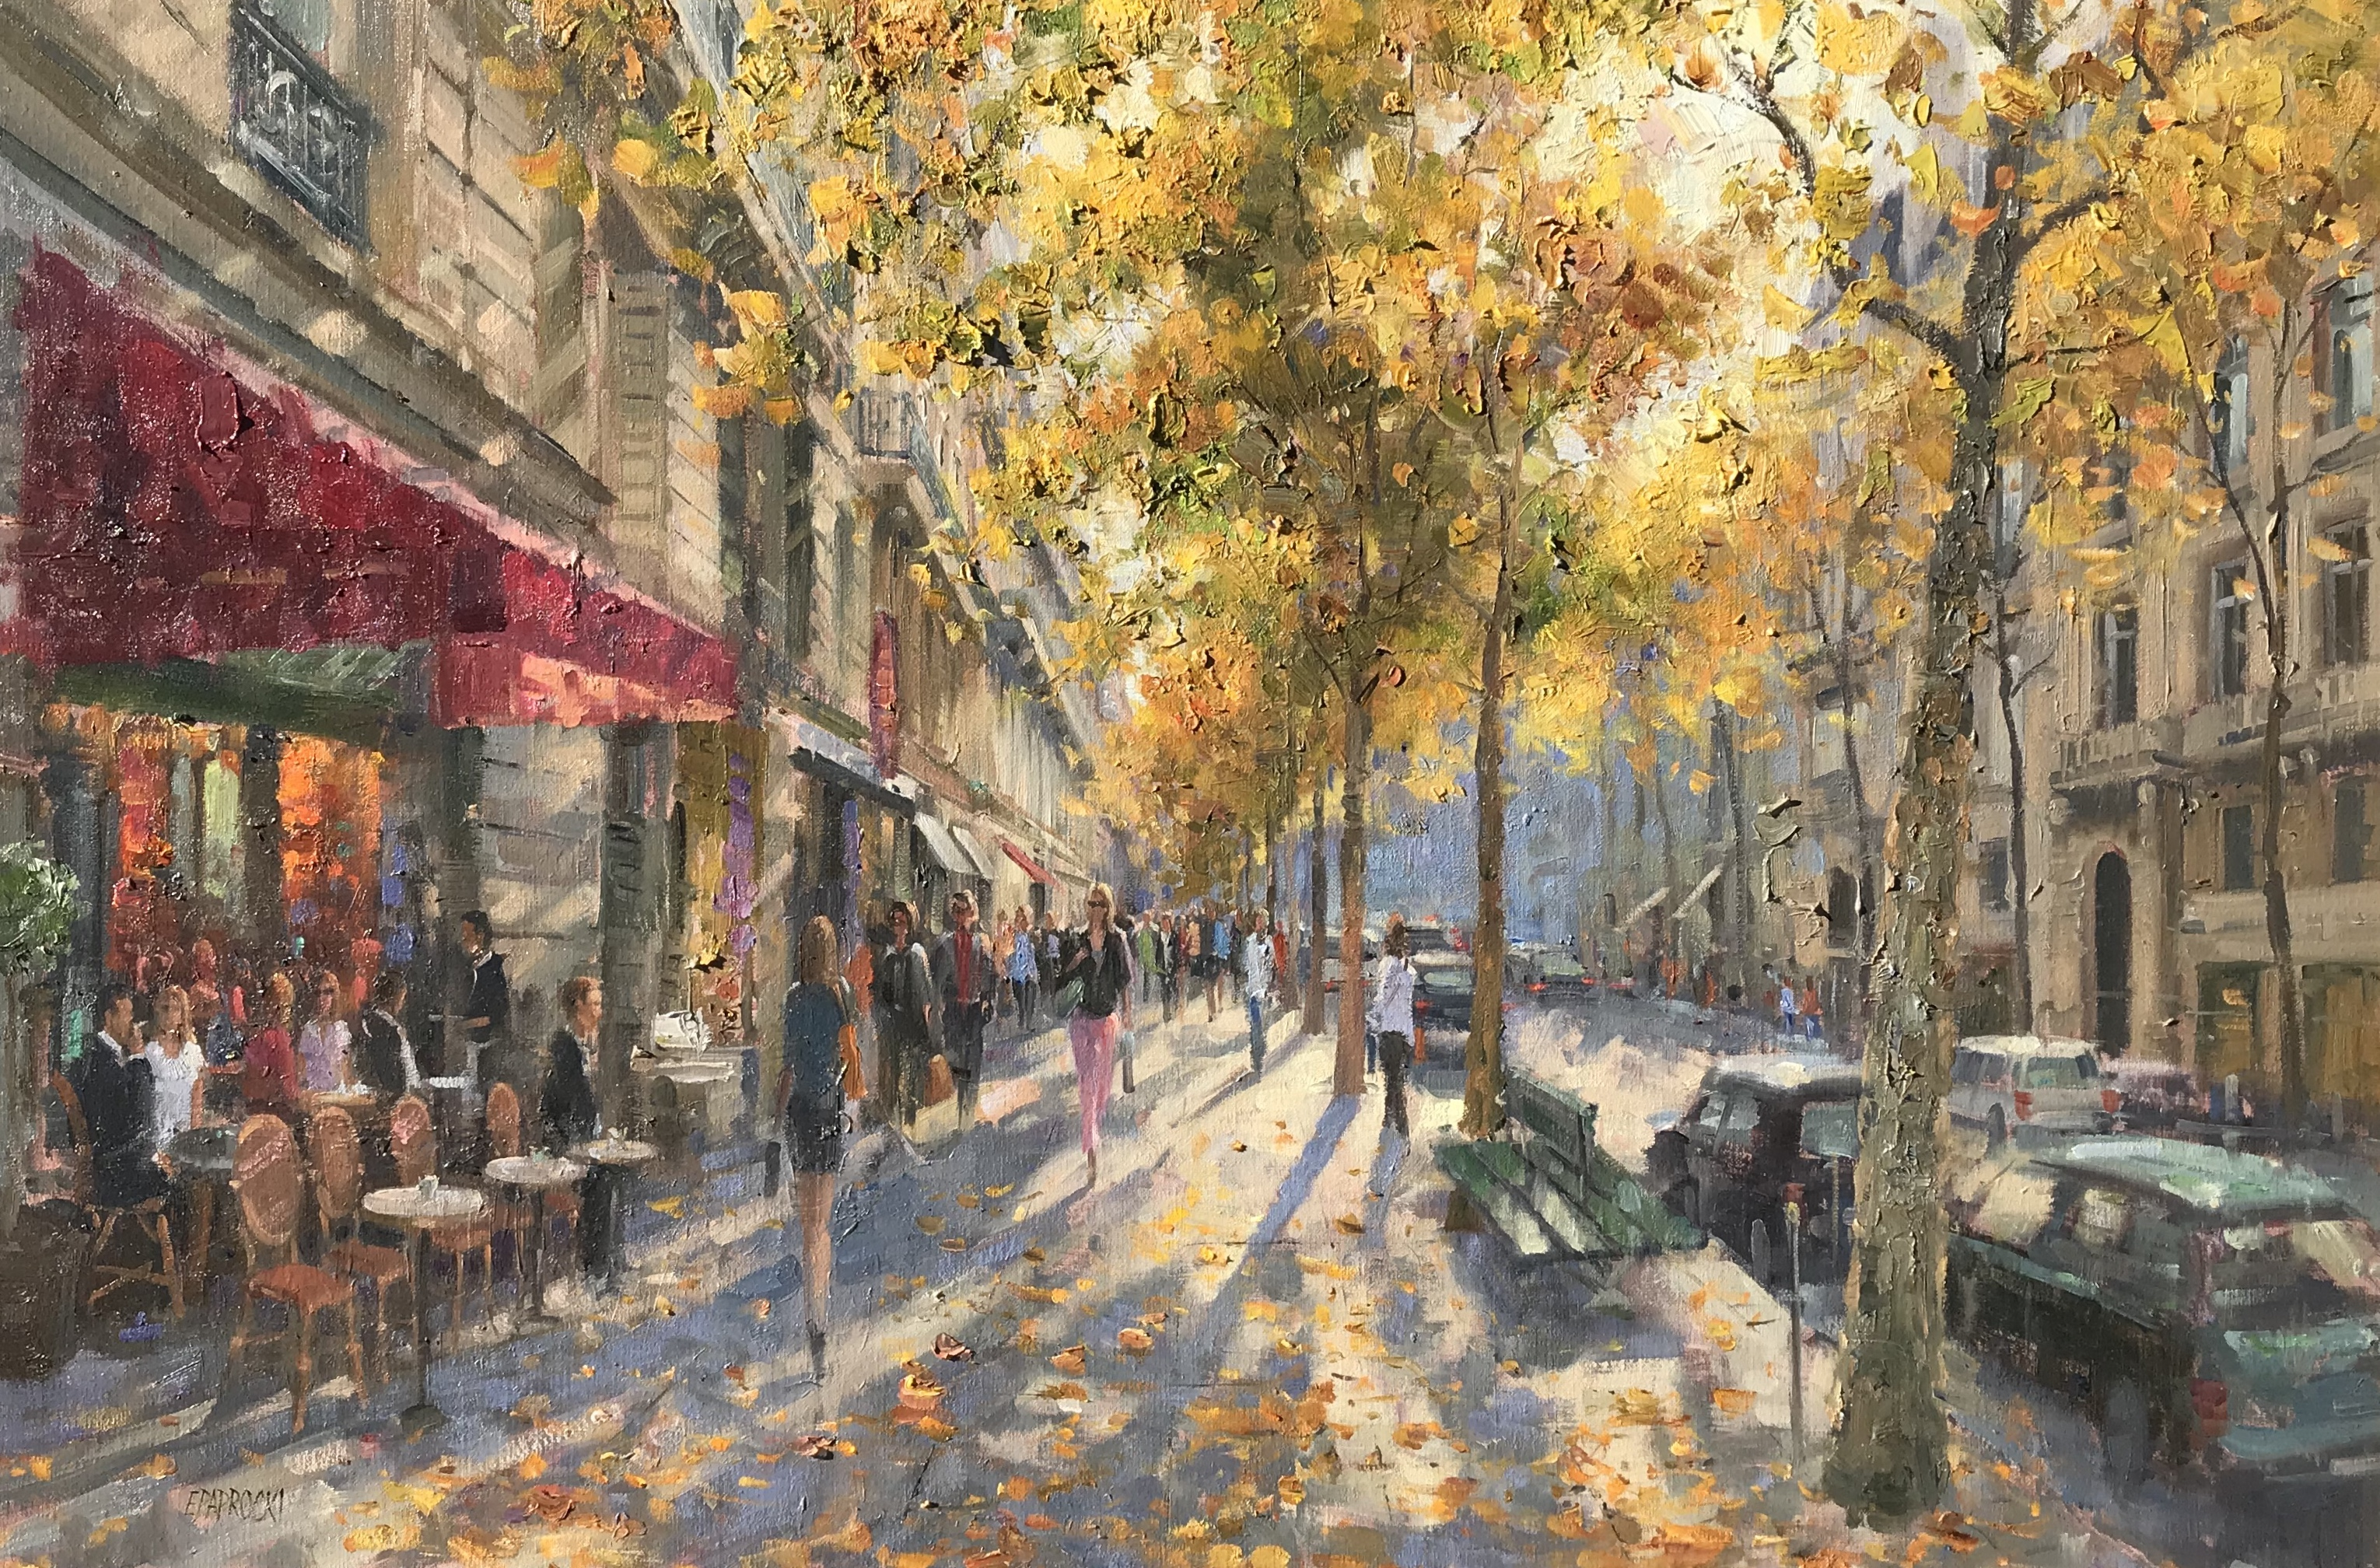 alt St. Germain in Autumn Light